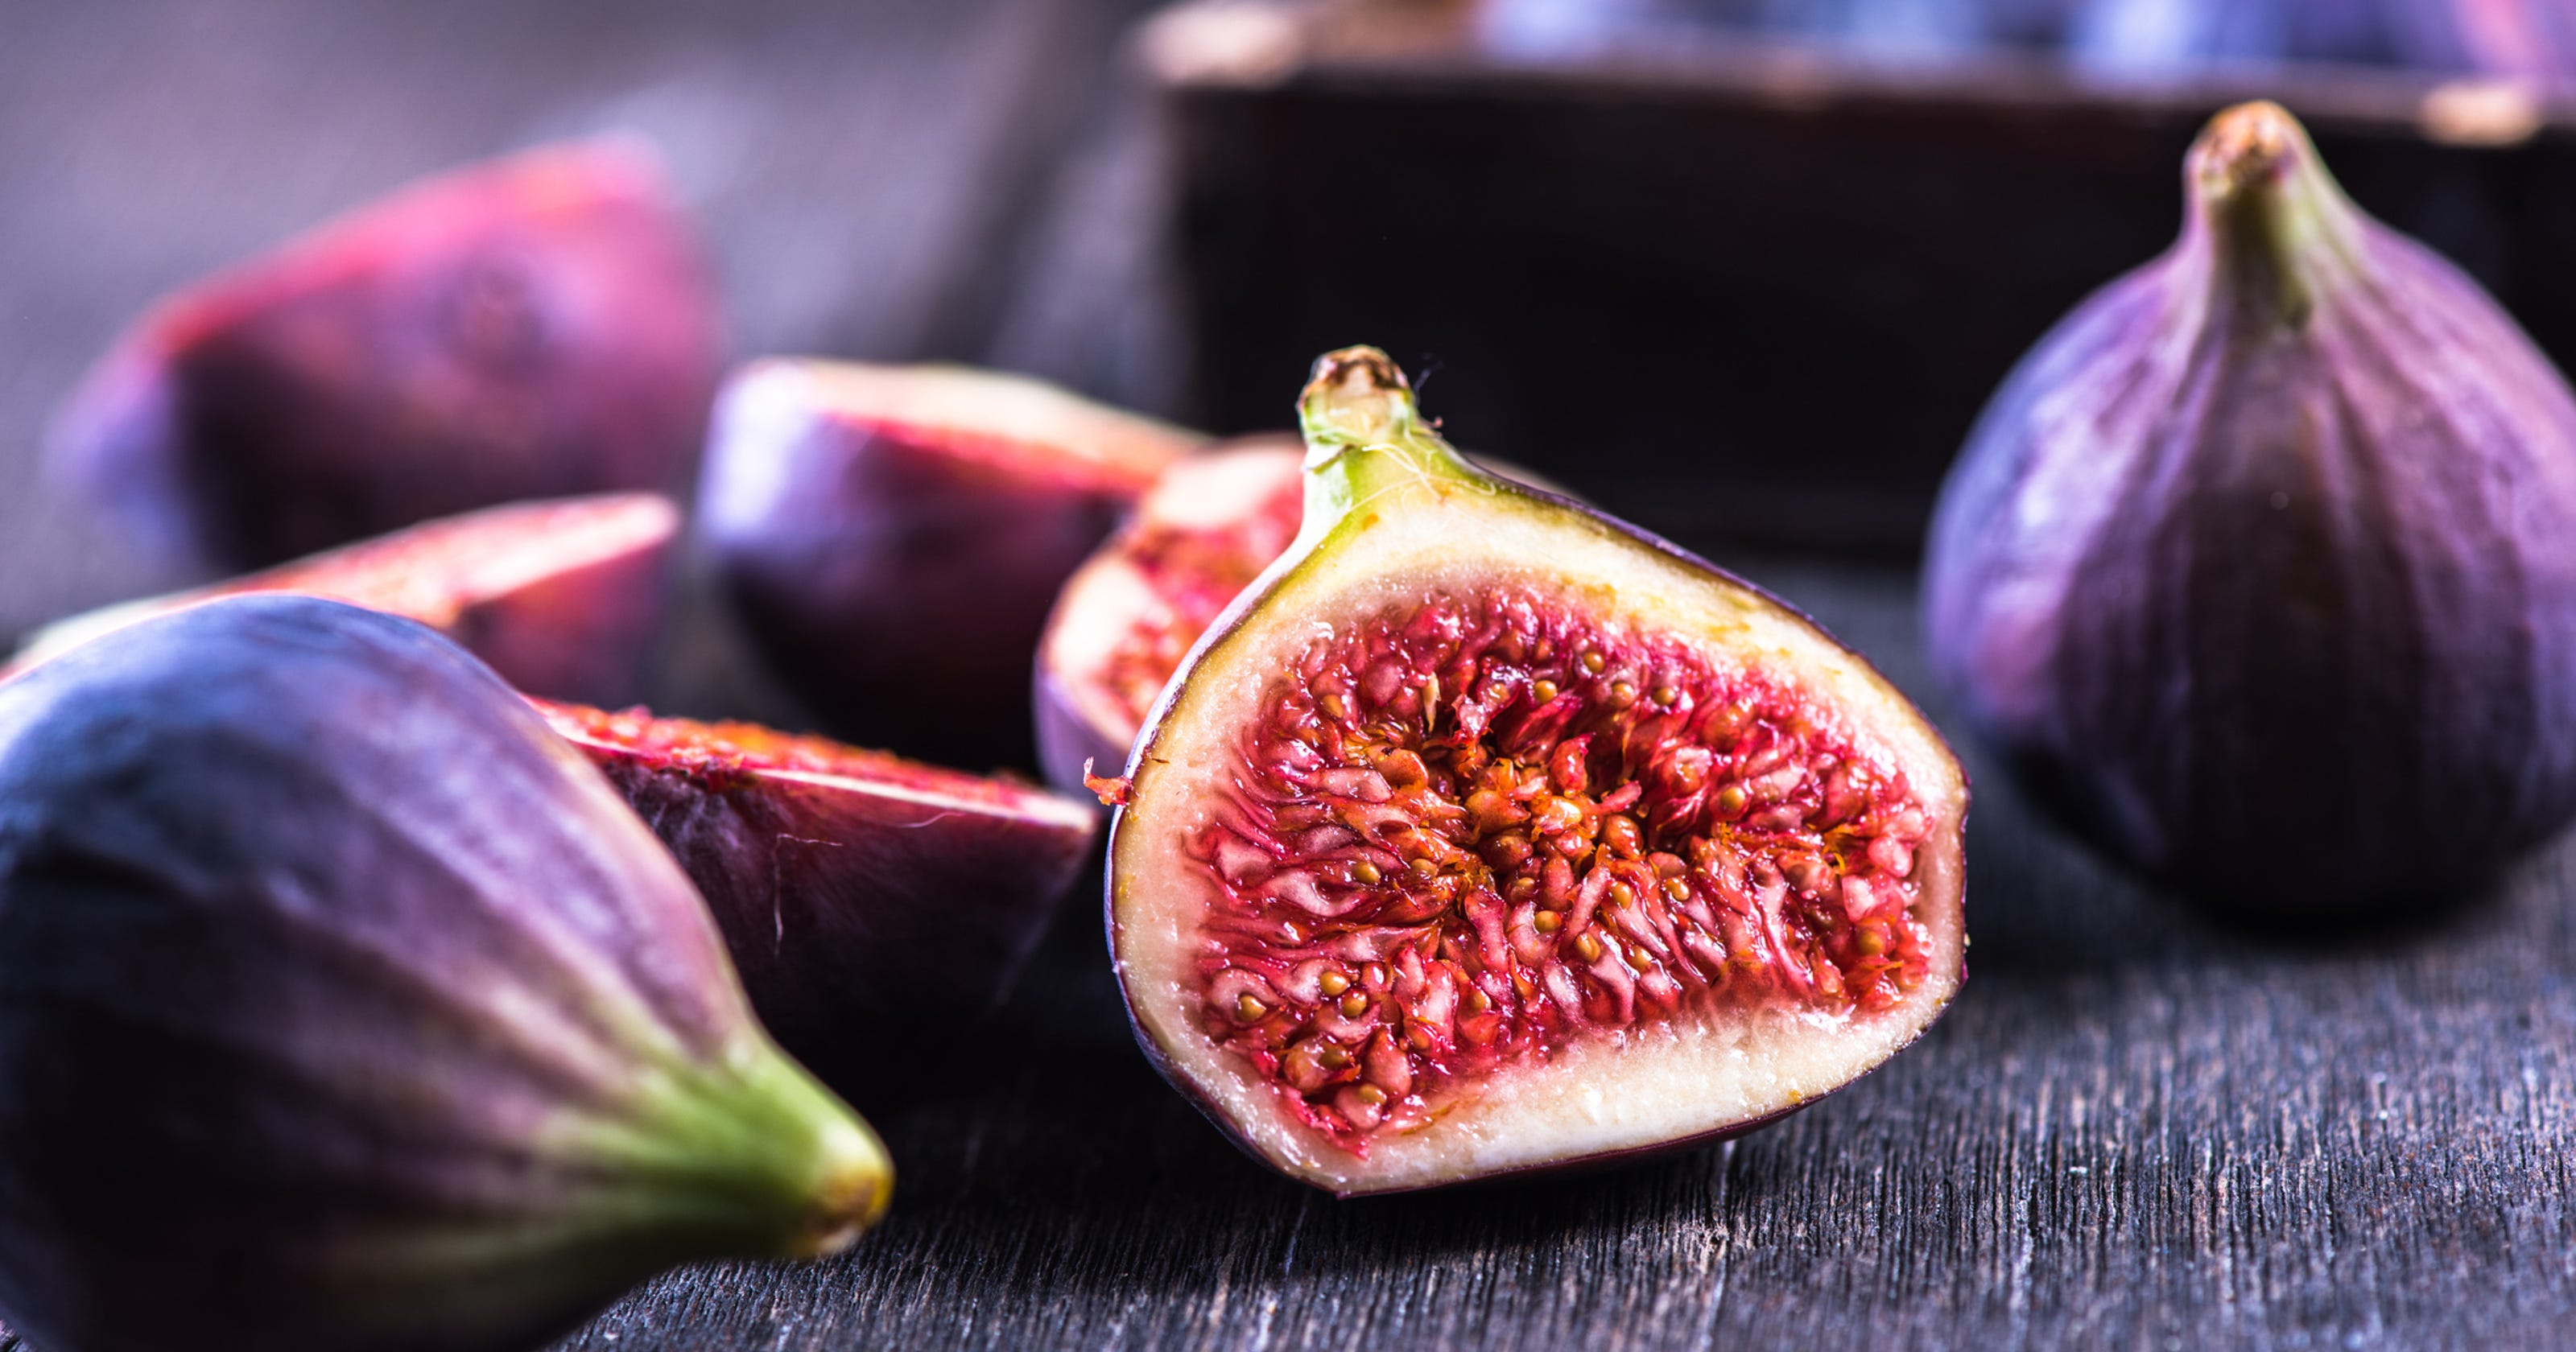 Ask The Pharmacist: Do figs really contain wasp parts?